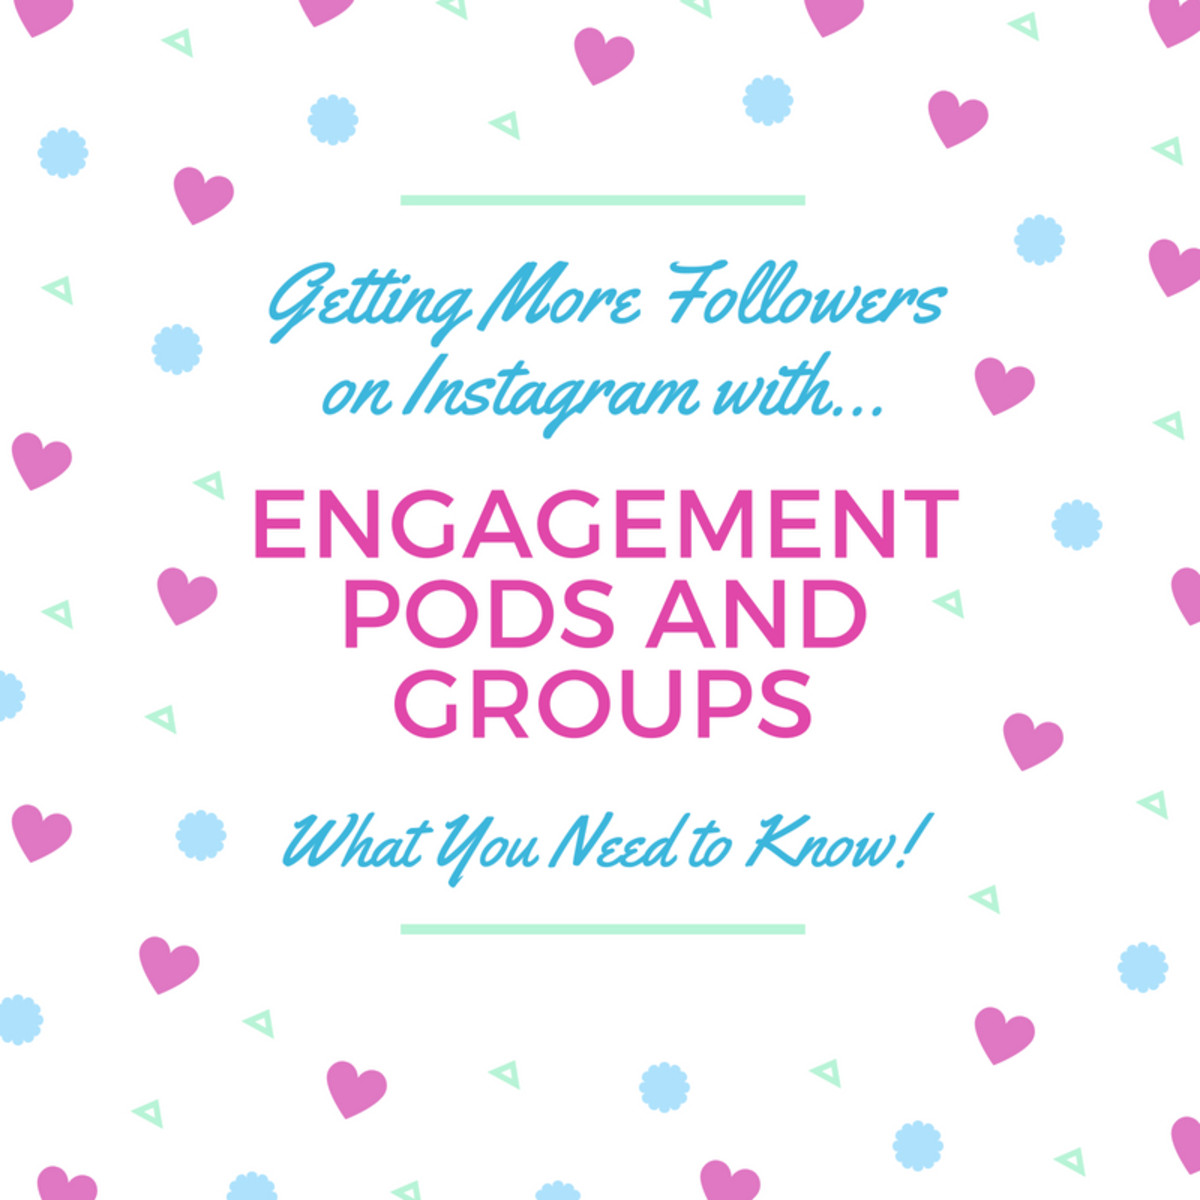 Get More Followers on Instagram with Engagement Pods or Groups? What You Need to Know